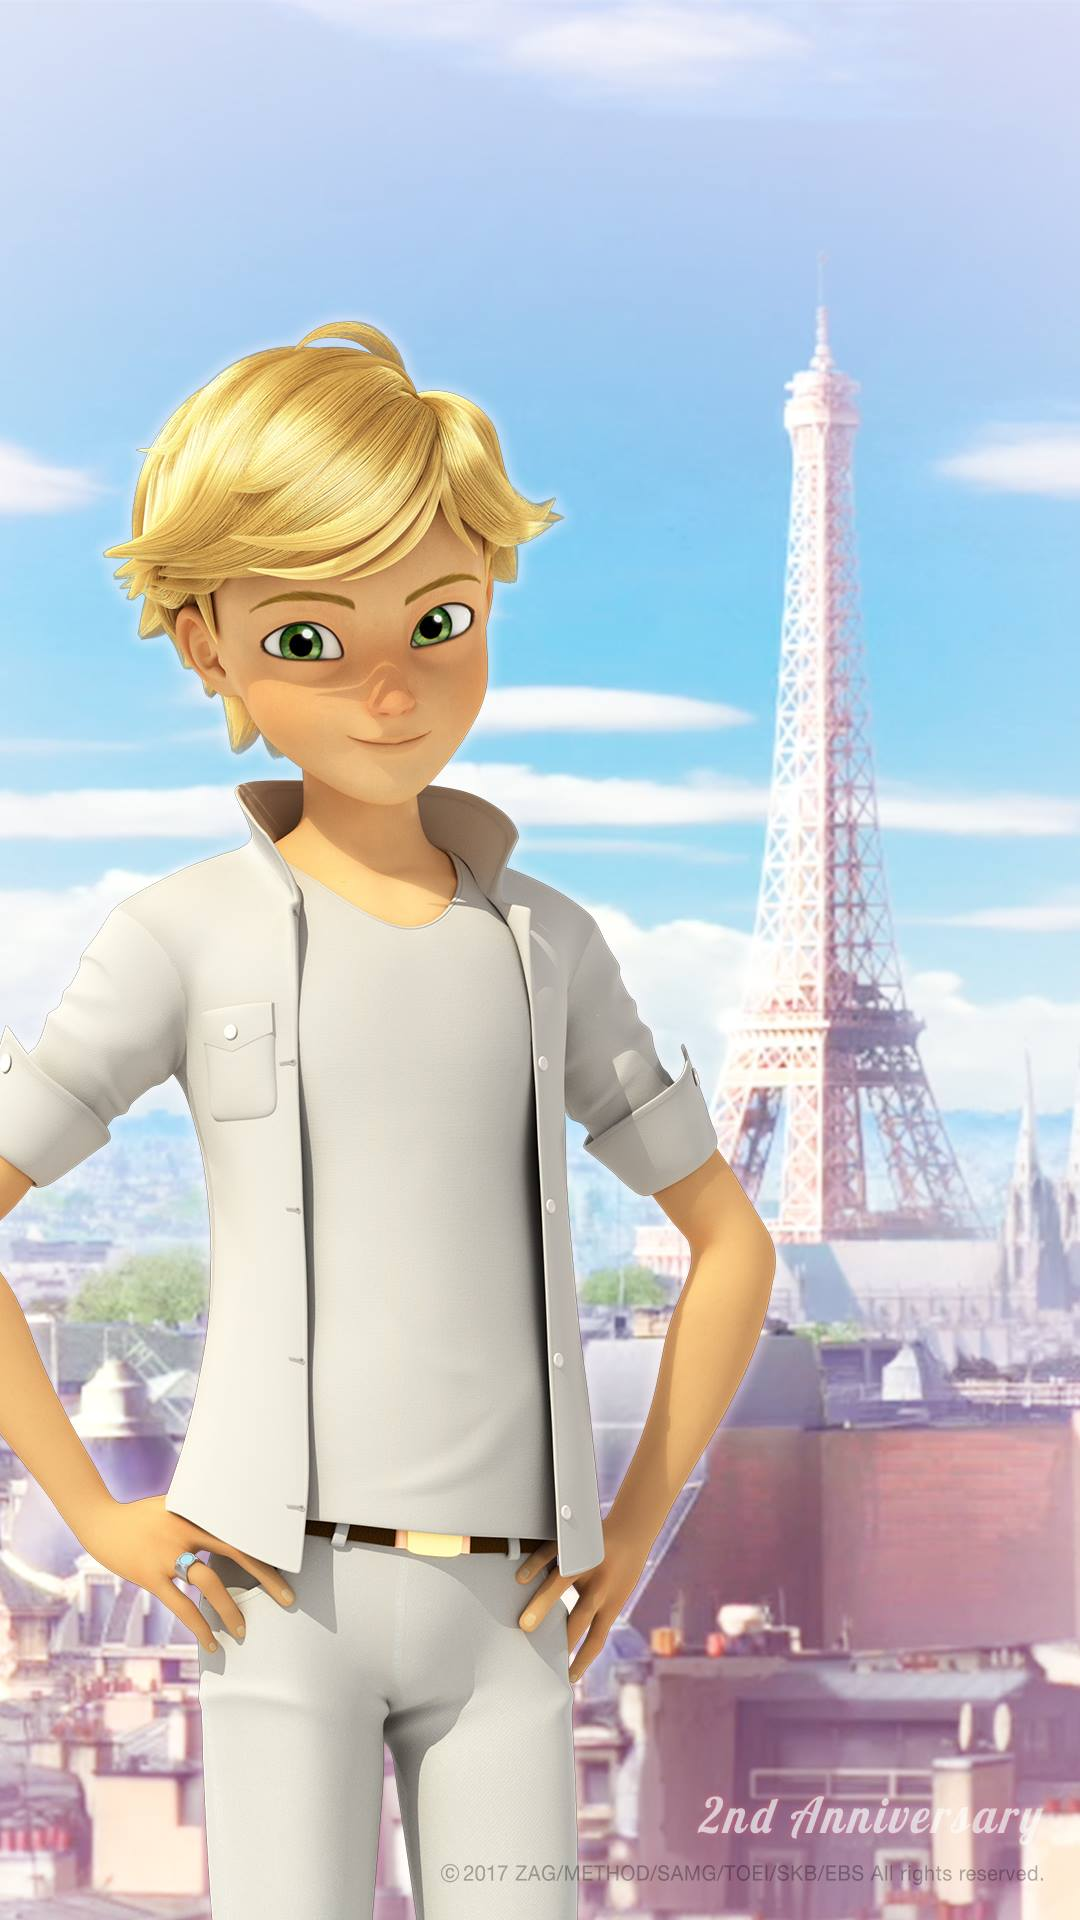 Cute Girls Dresess Cute Anime Wallpaper Hd Miraculous Ladybug New Official Images Of Marinette And